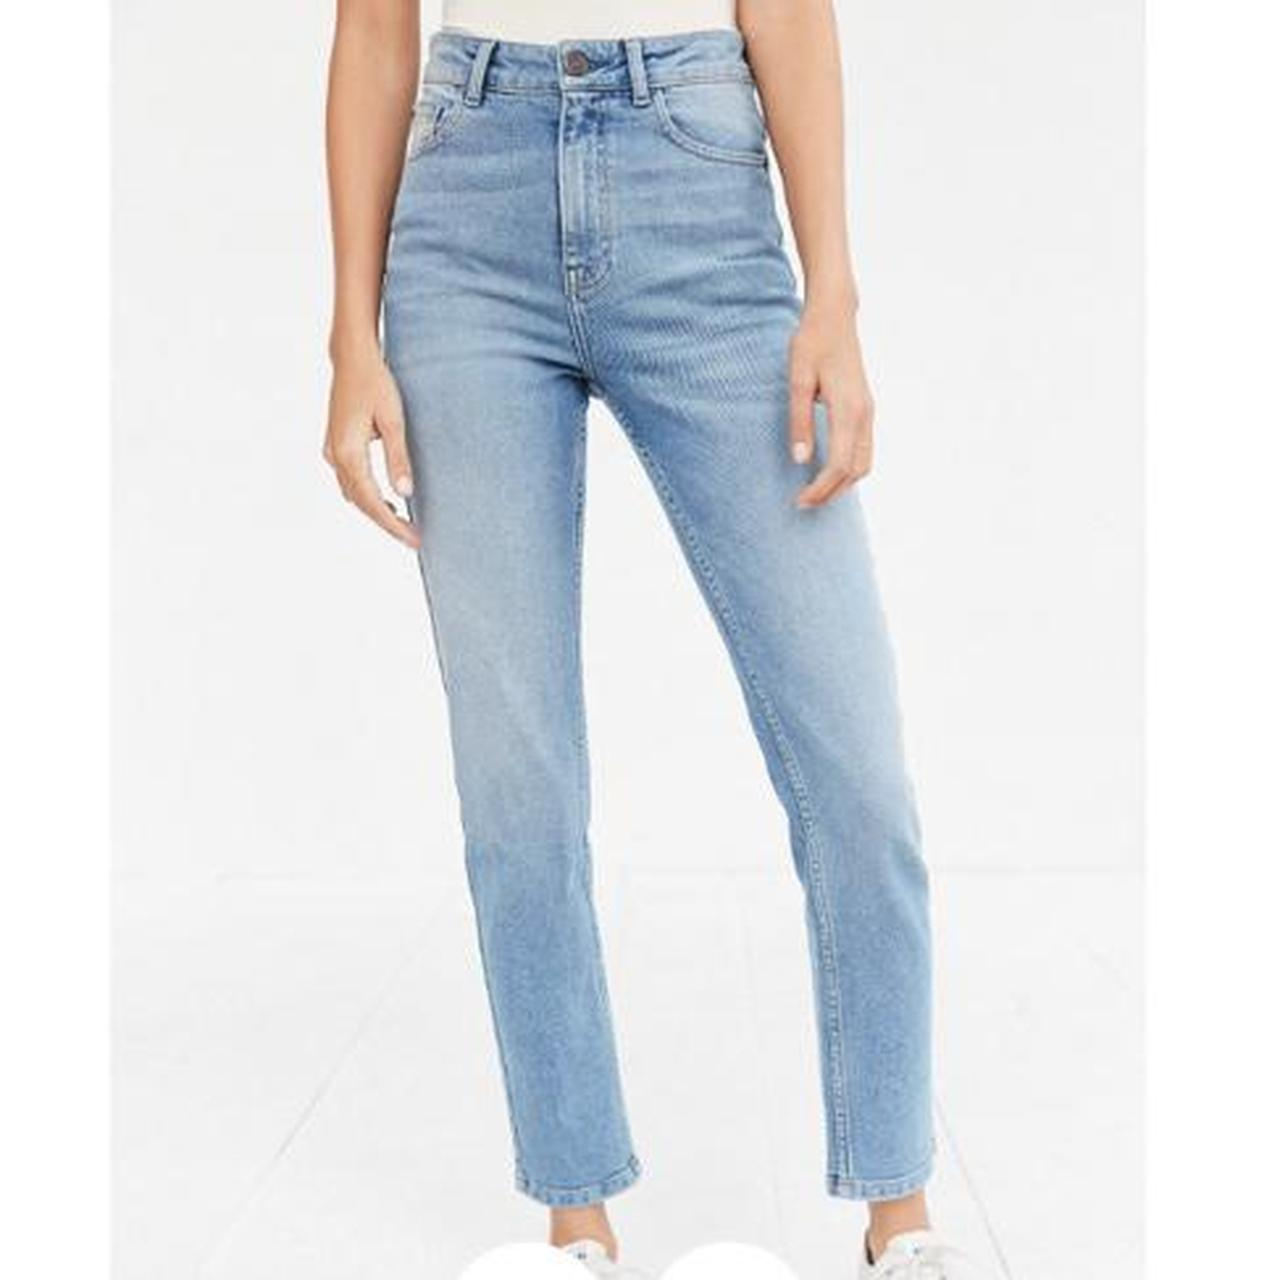 Product Image 1 - Urban Outfitters BDG High waisted